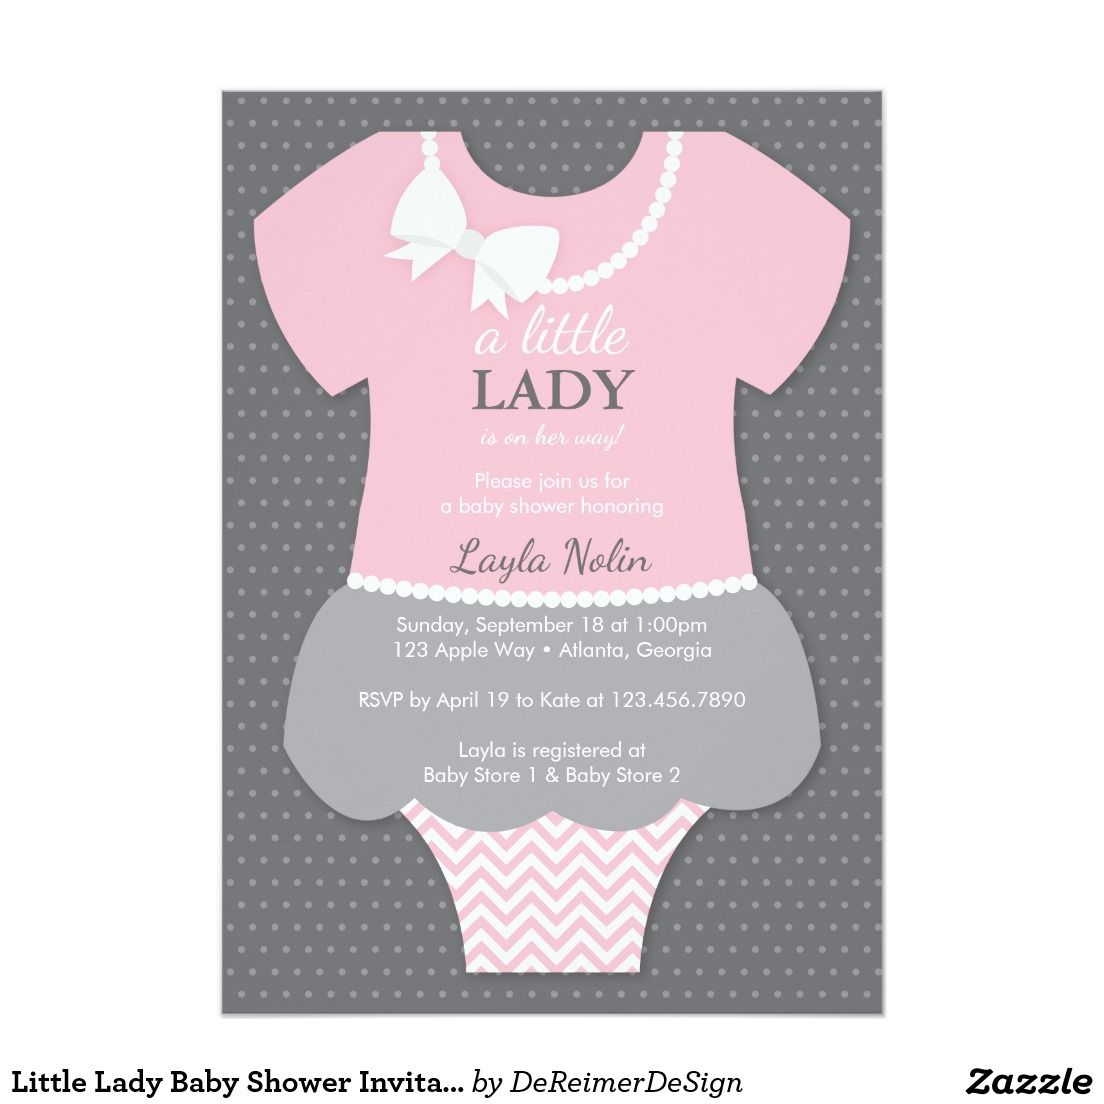 Little Lady Baby Shower Invitation Pink Pearls Invitation Baby